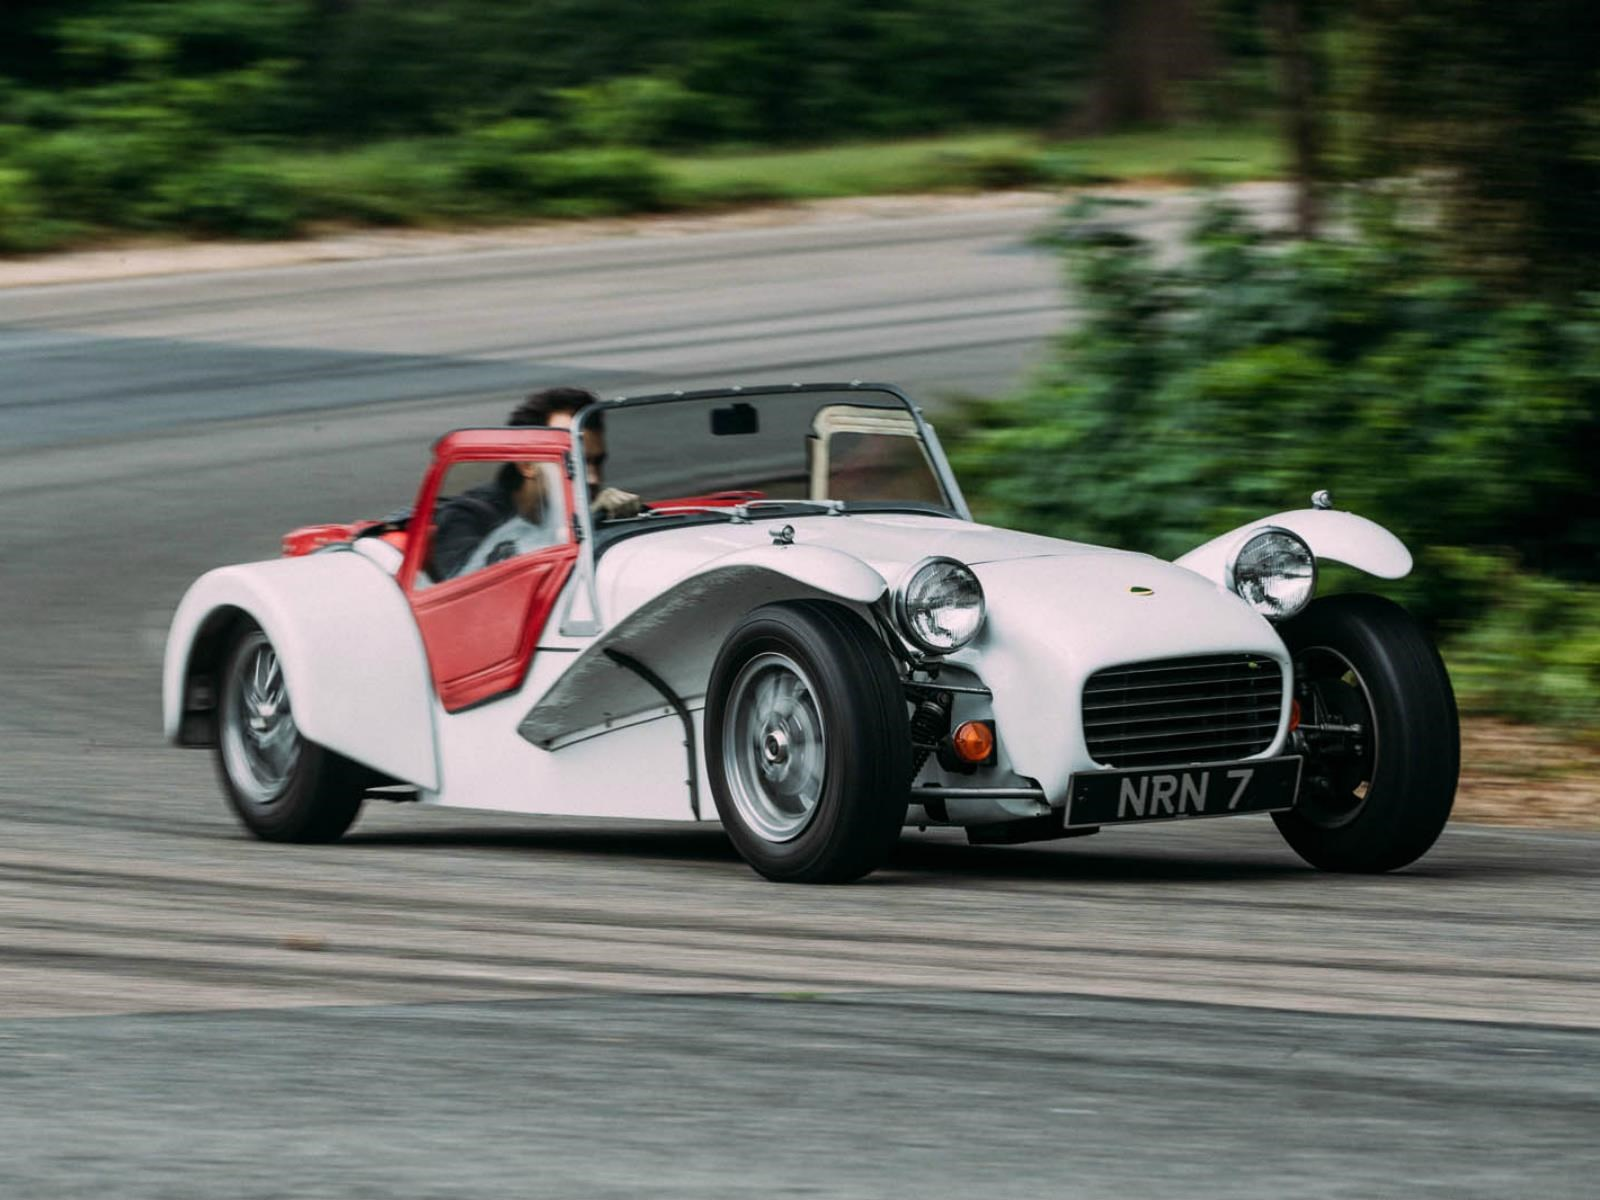 Convertir De Dolares A Libras Caterham Seven Supersprint En Goodwood Revival